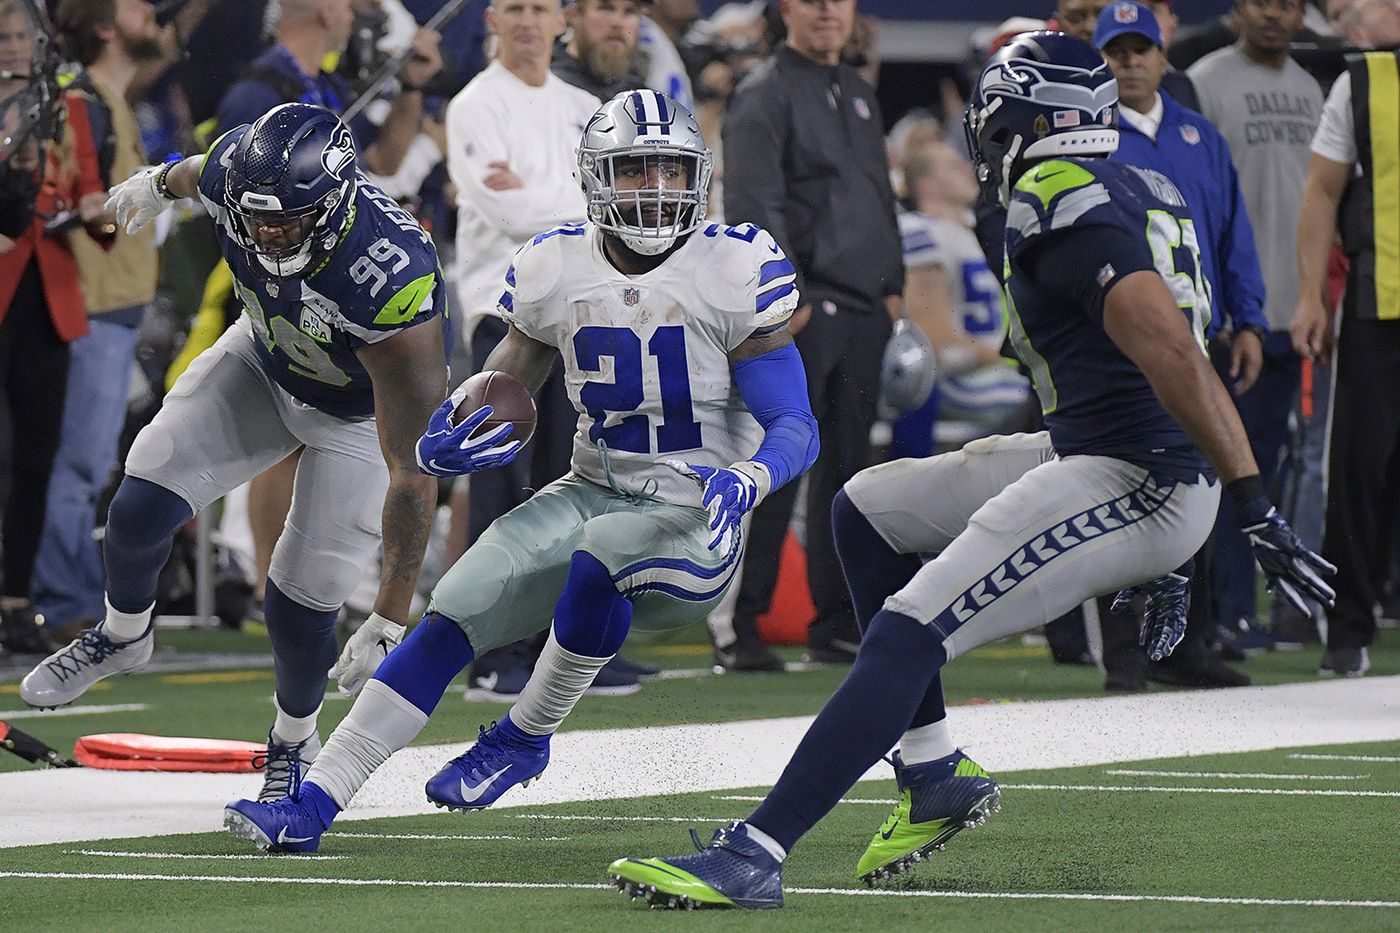 Cowboys Seahawks Week 3 Game How To Watch Game Time Tv Schedule Online Streaming Radio Blogging The Boys